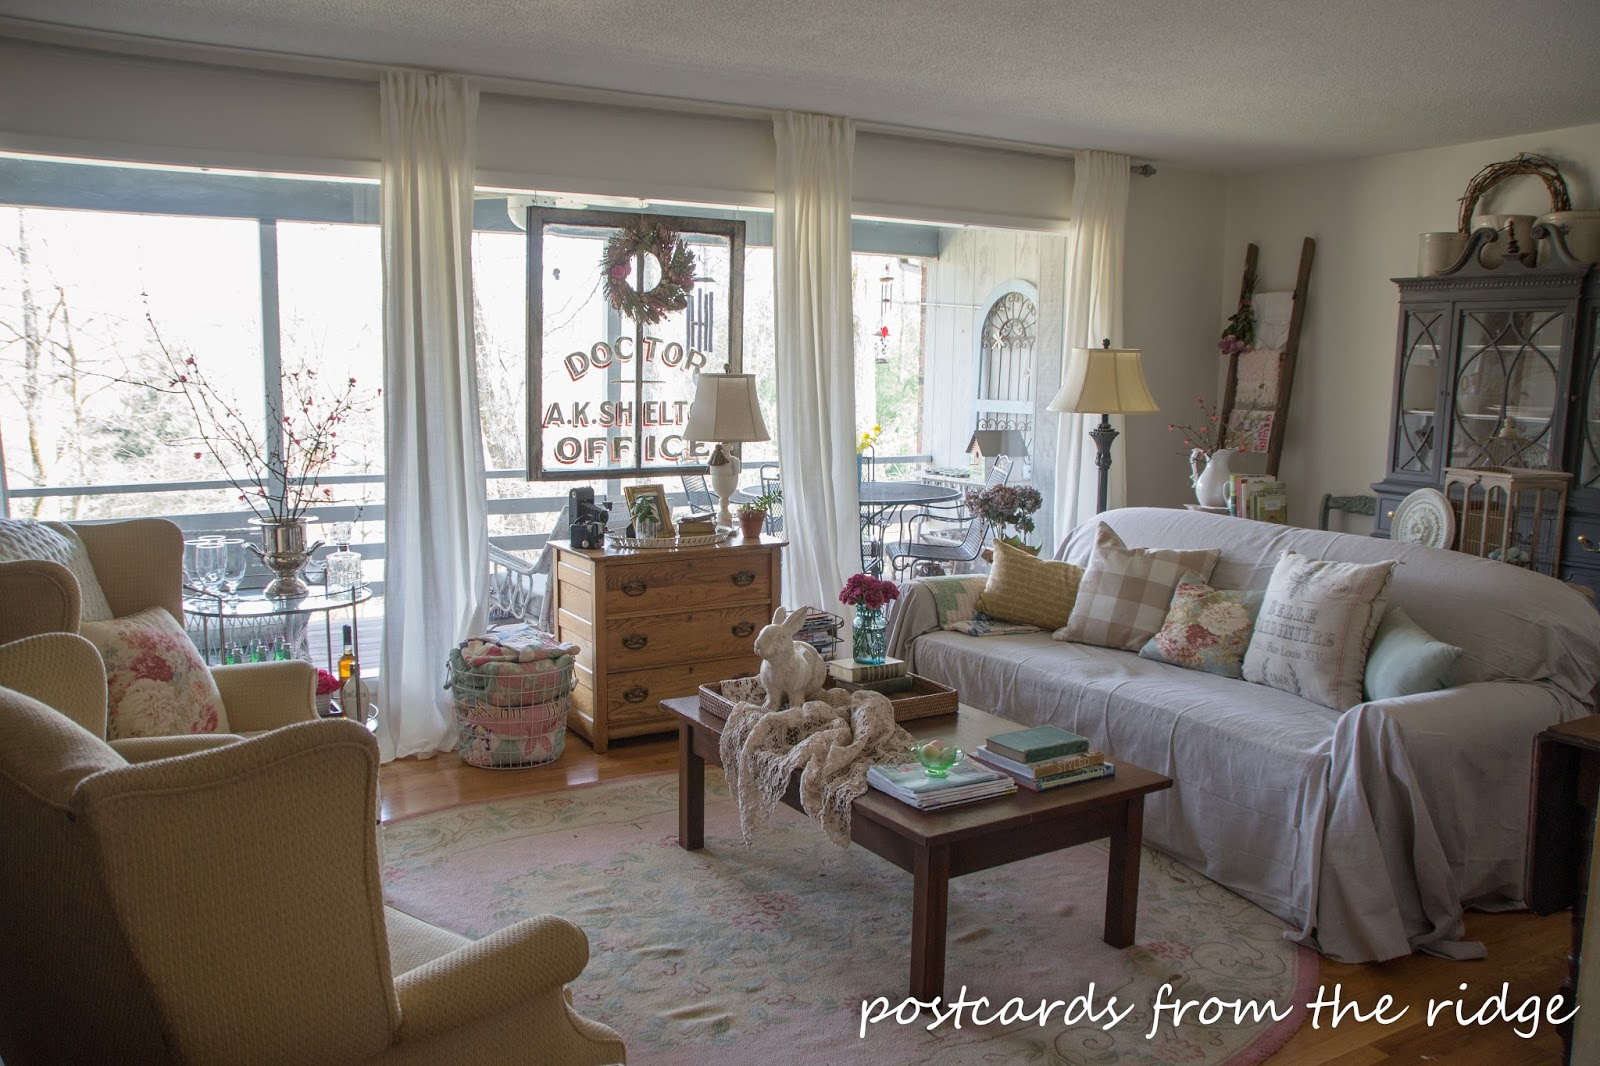 New Furniture Arrangement And Spring Decor In The Living Room Postcards From The Ridge